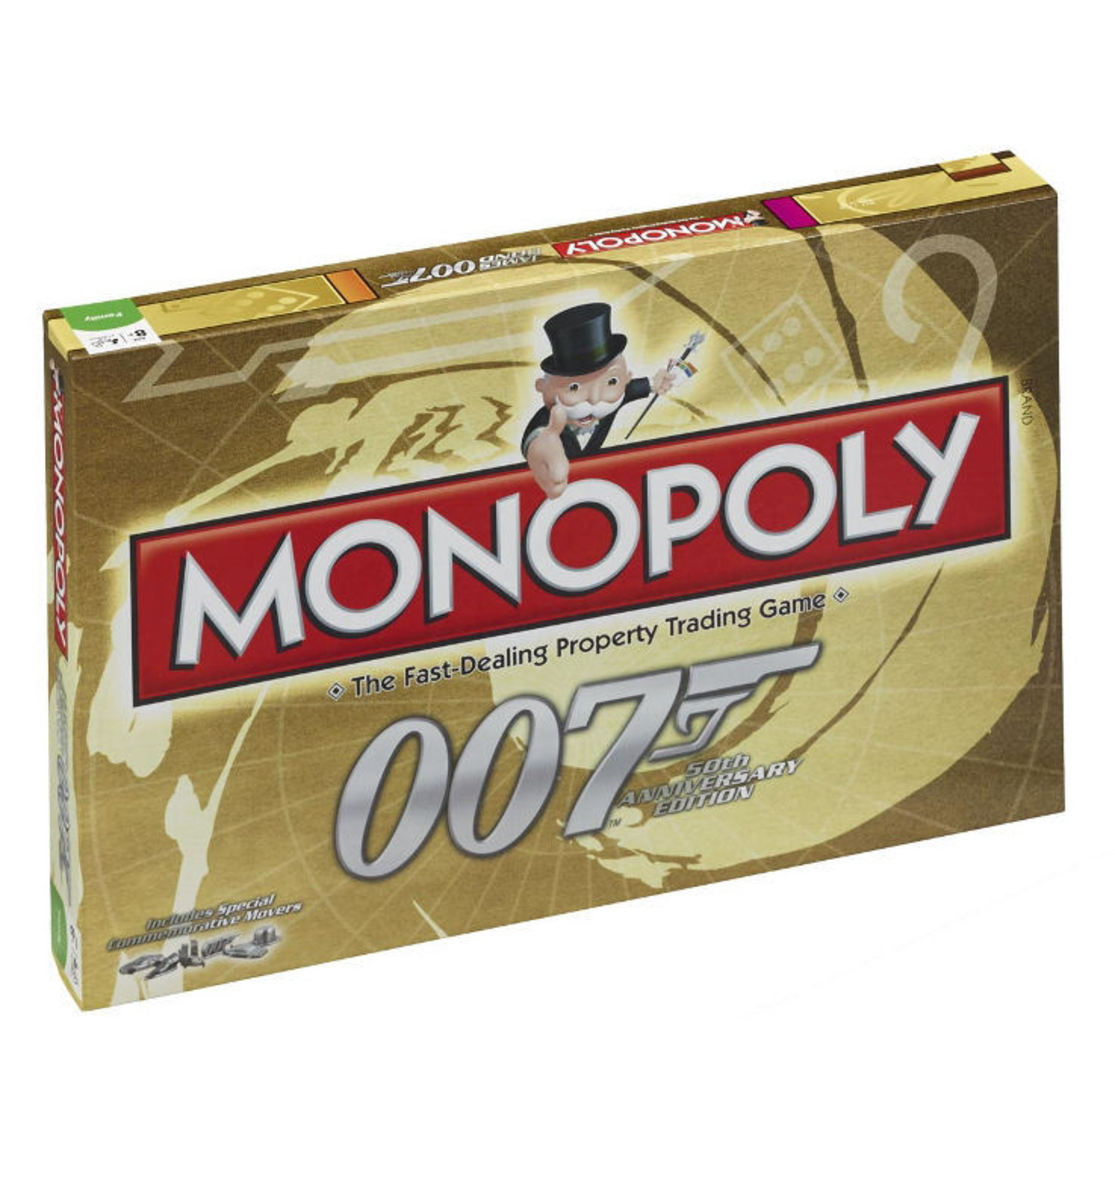 hra 007 James Bond - Monopoly - WM-MONO-007